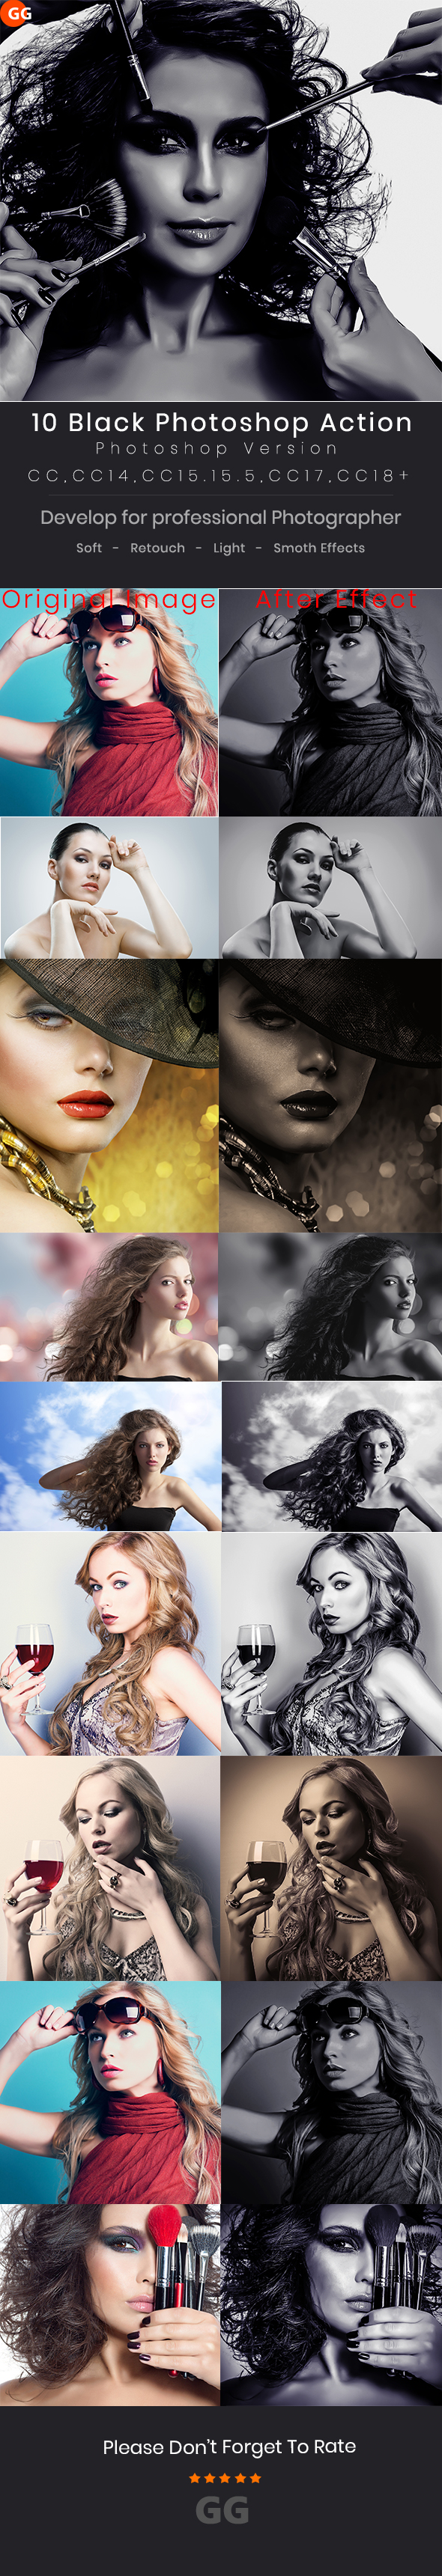 10 Dark Black Photoshop Action - Photo Effects Actions